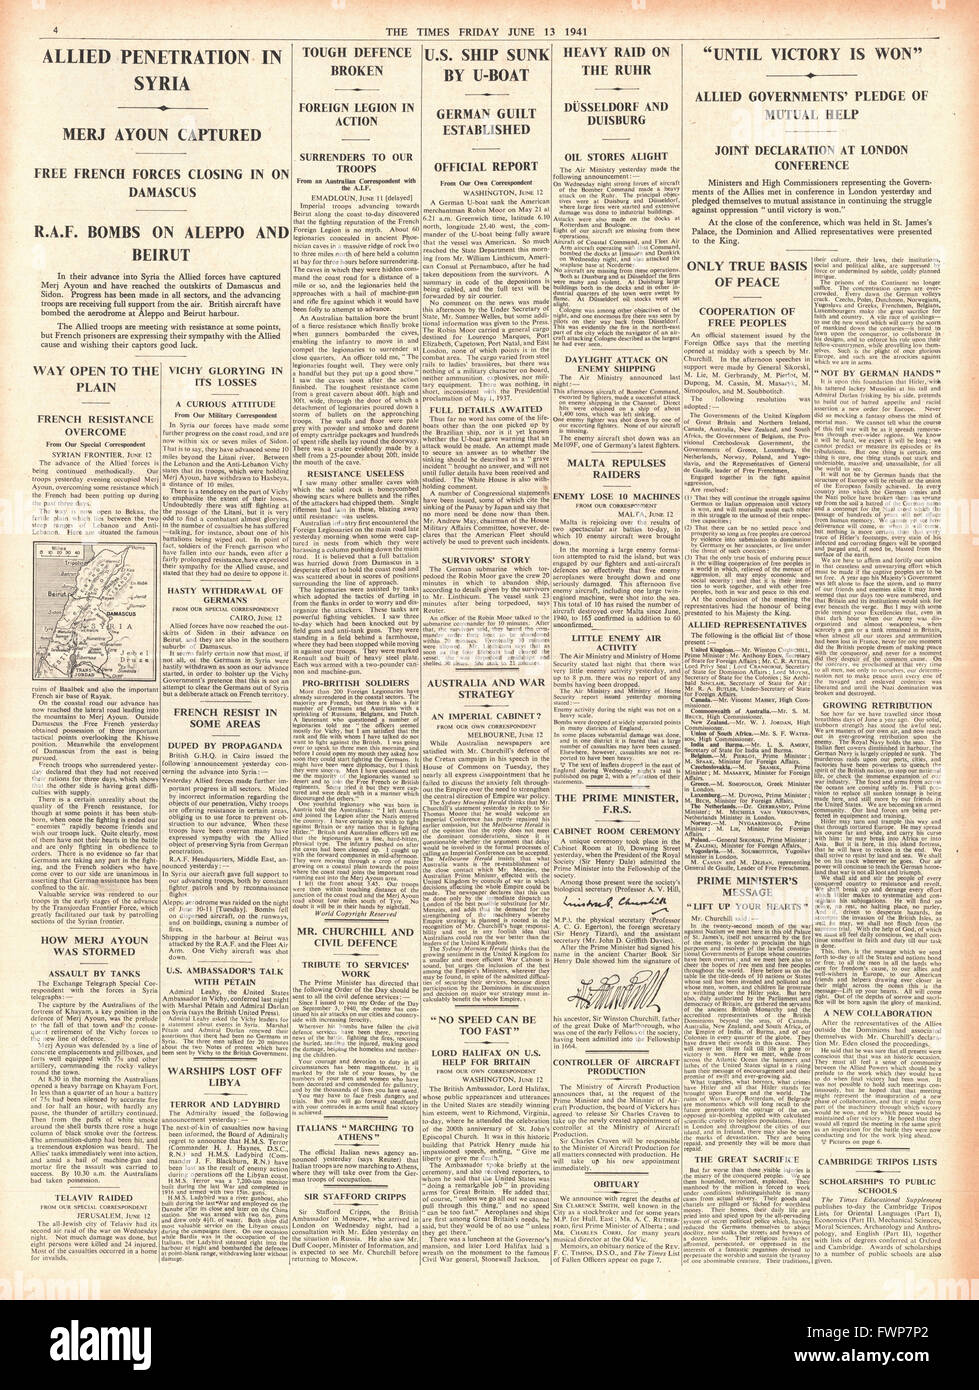 1941 page 4 The Times Allies pledge to defeat Nazi Germany, Allied Forces advance in Syria and RAF bomb Aleppo and - Stock Image